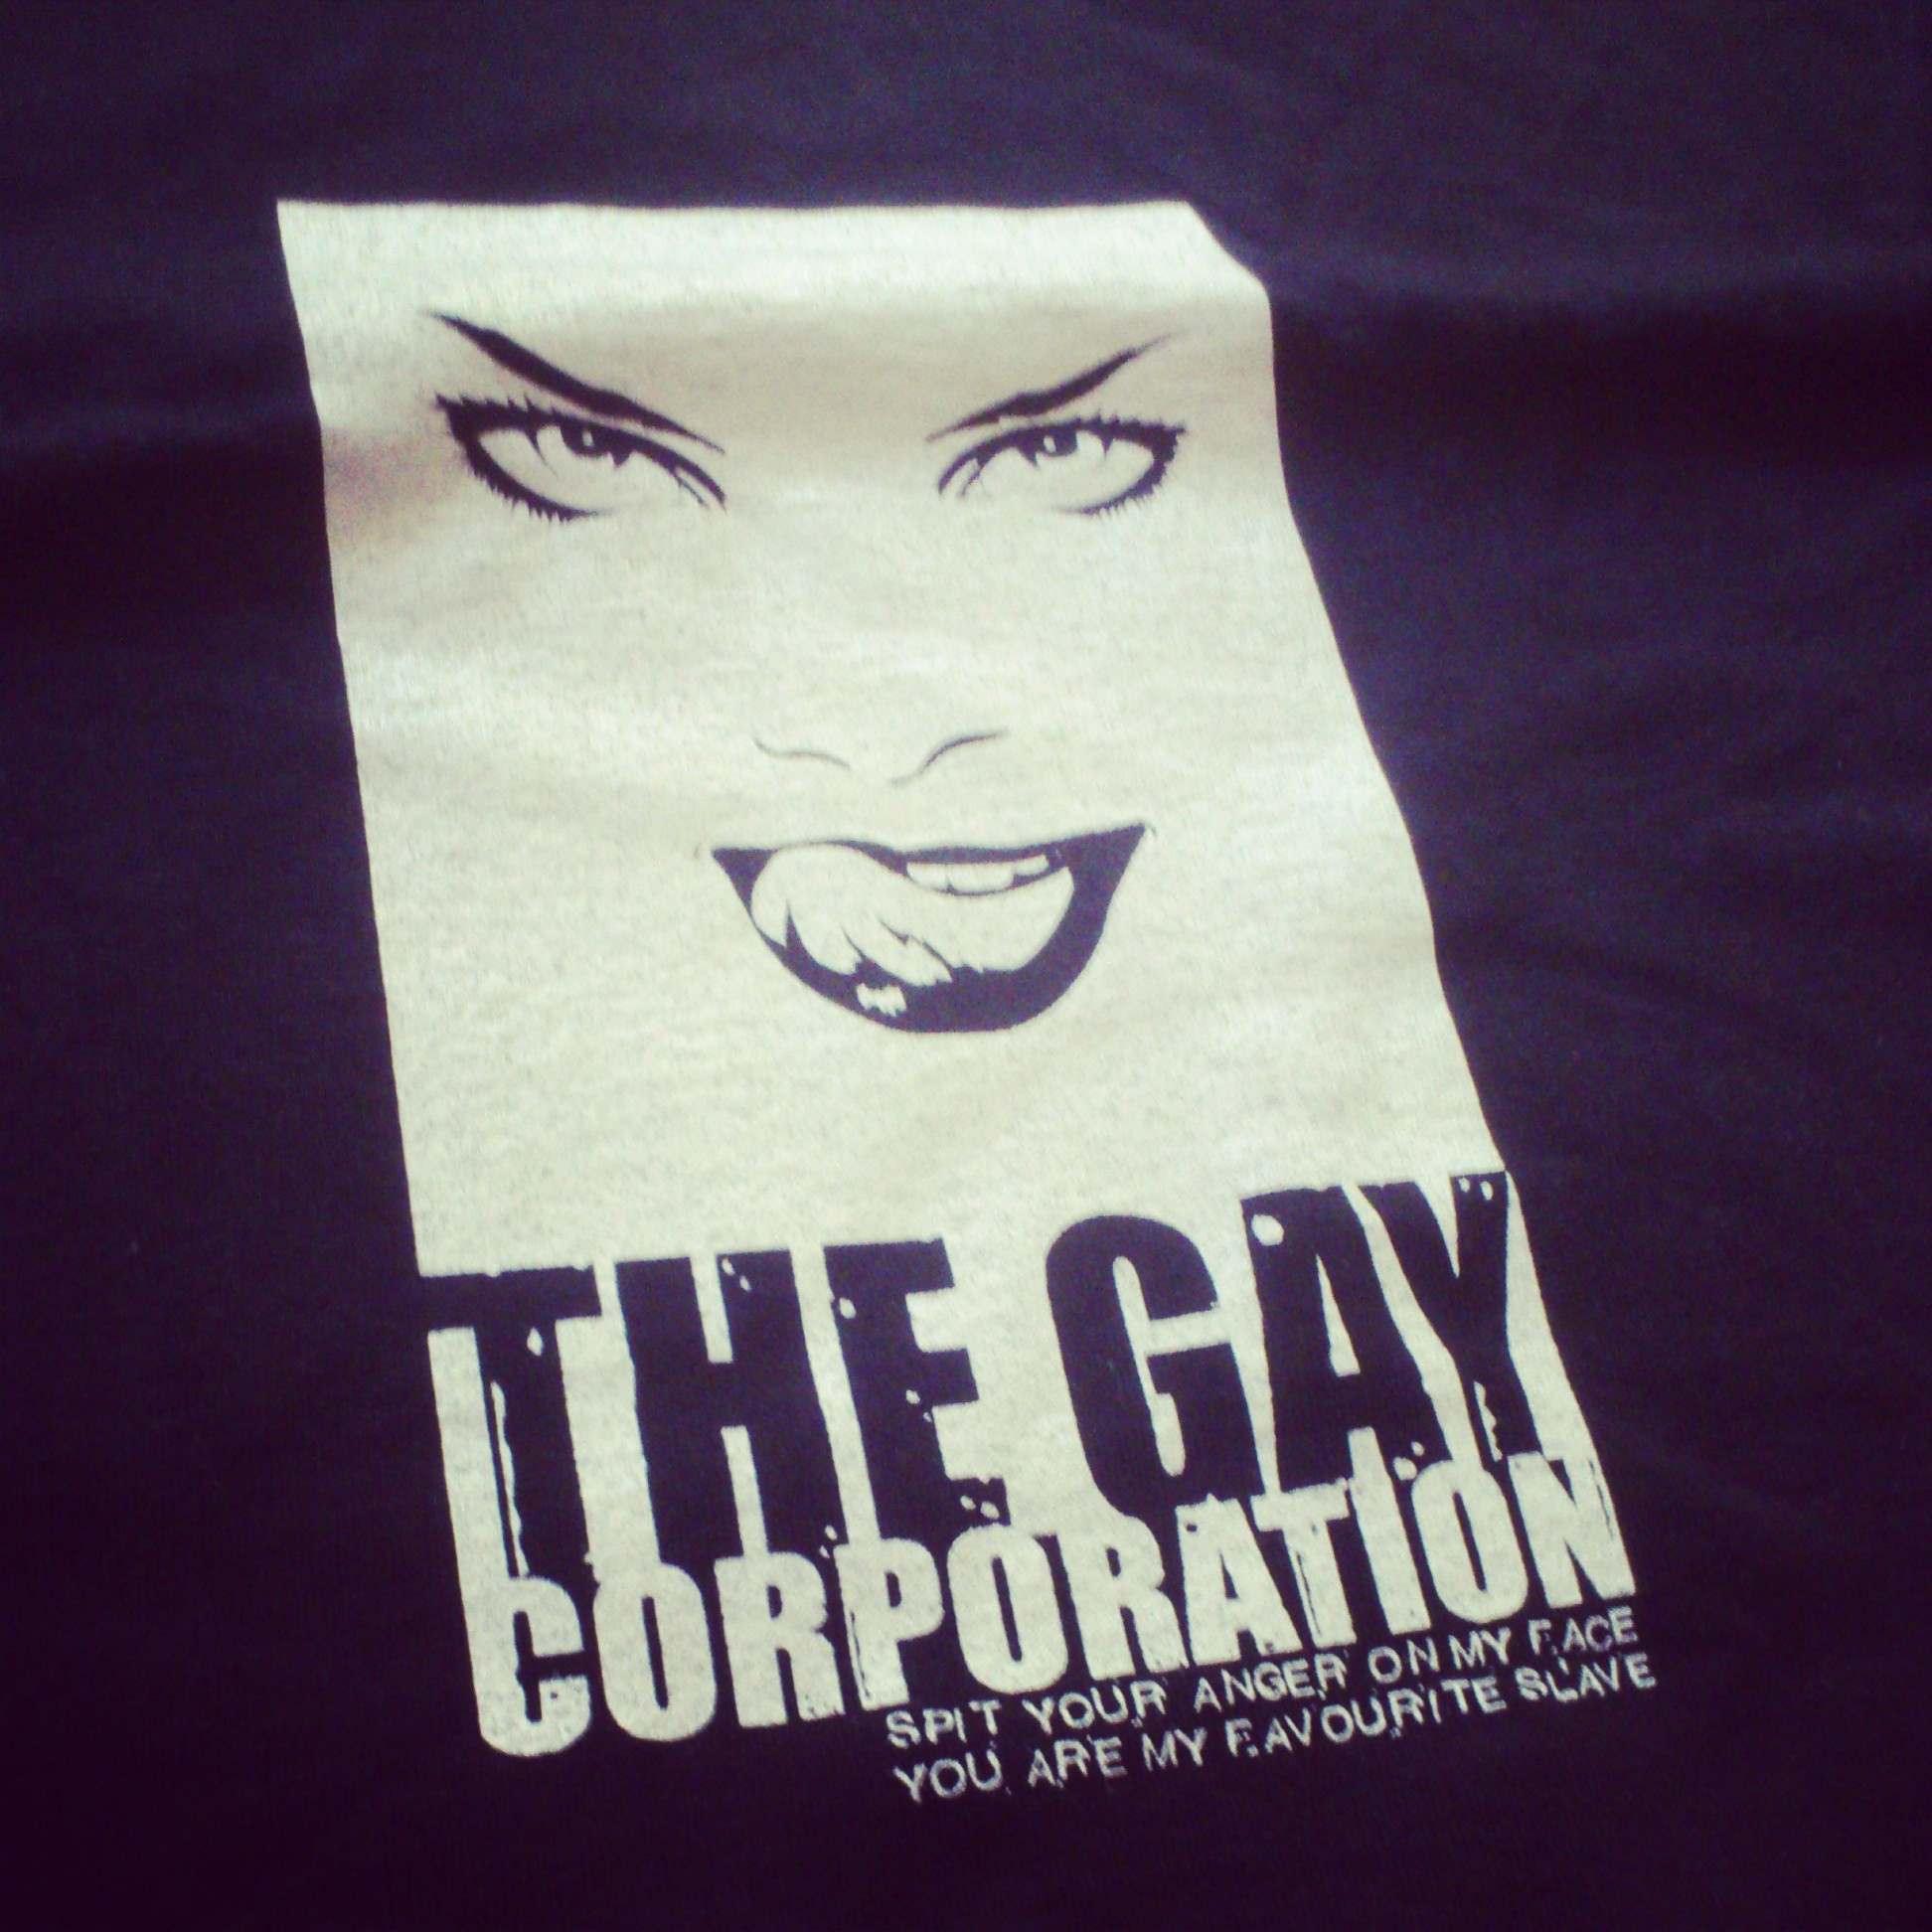 THE GAY CORPORATION Spit your anger on my face you are my favorite slave TS